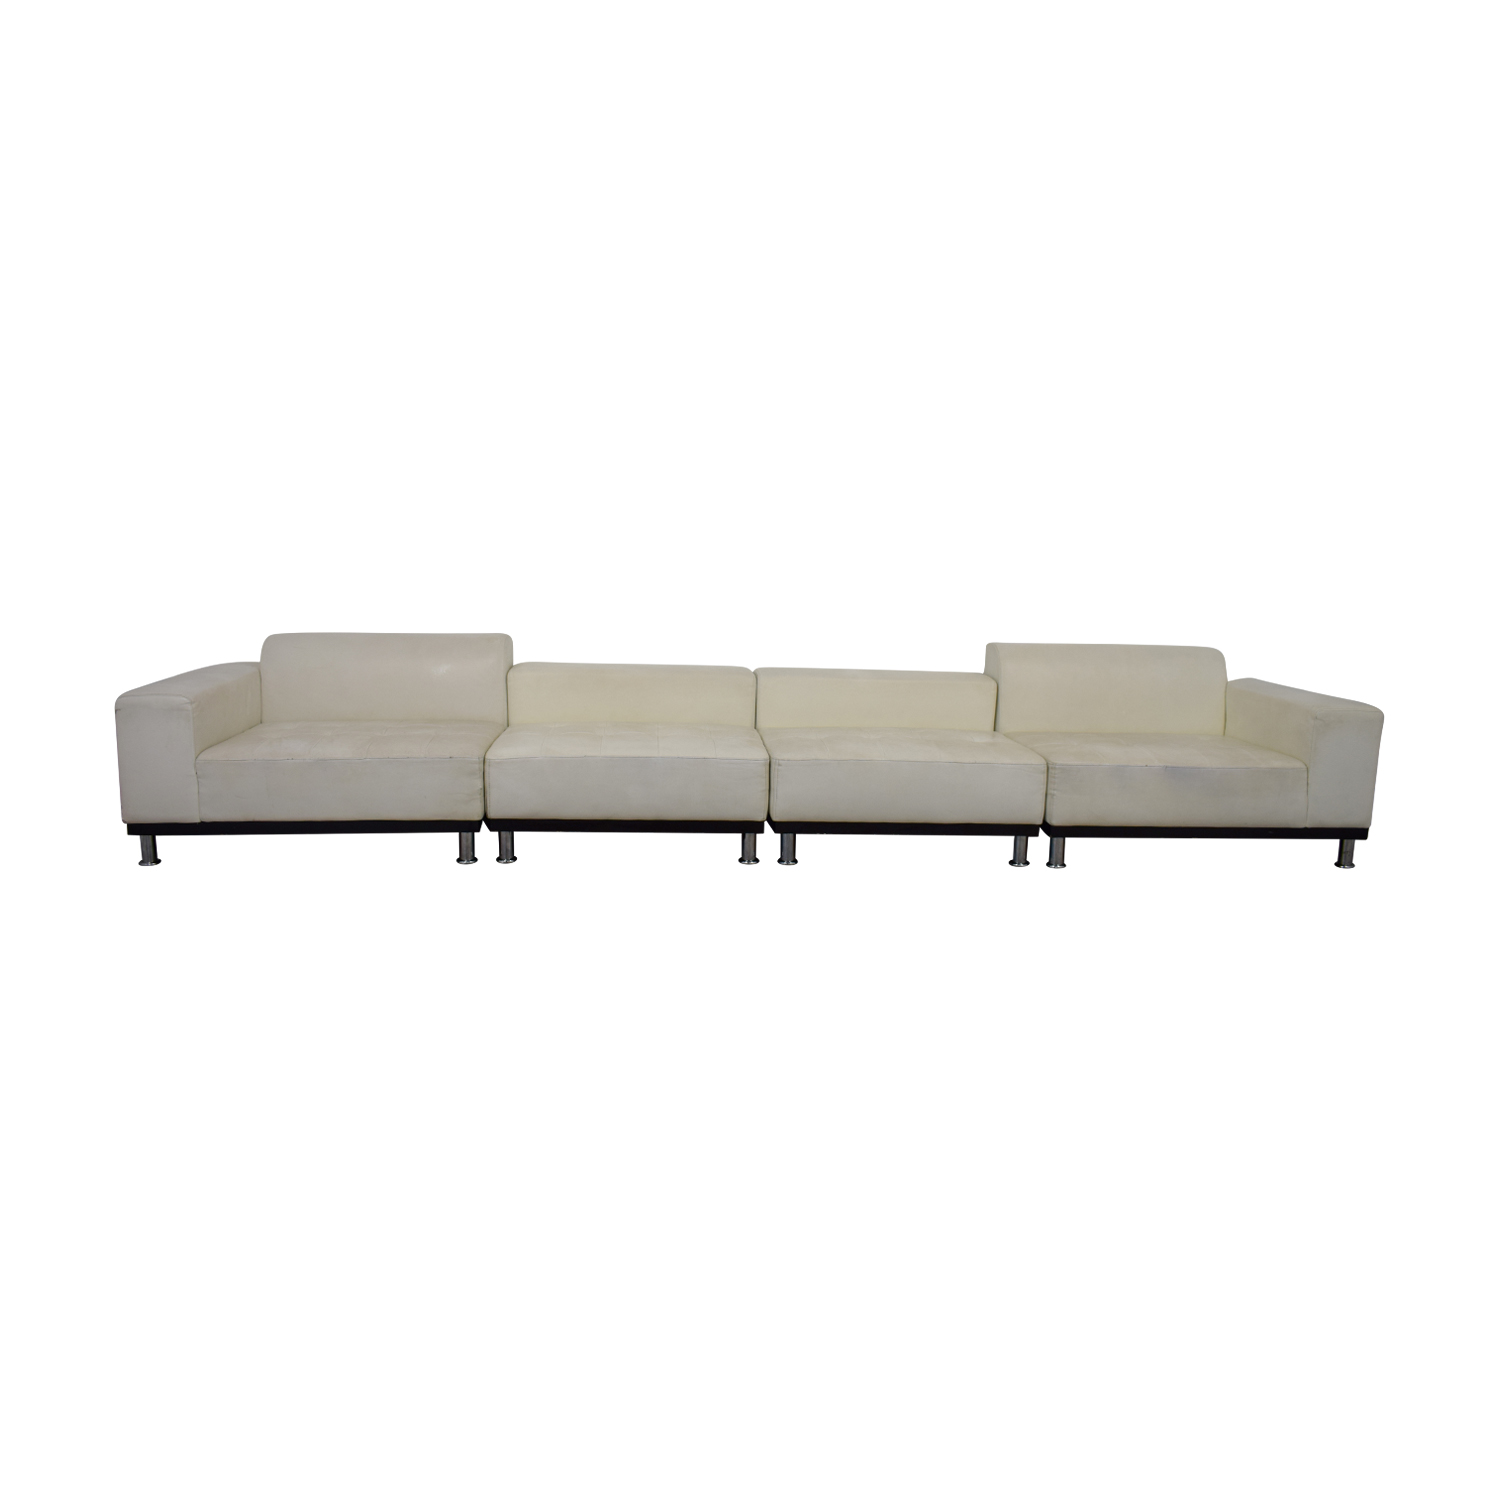 UrbanMod UrbanMod Phantom White Leather Sectional for sale